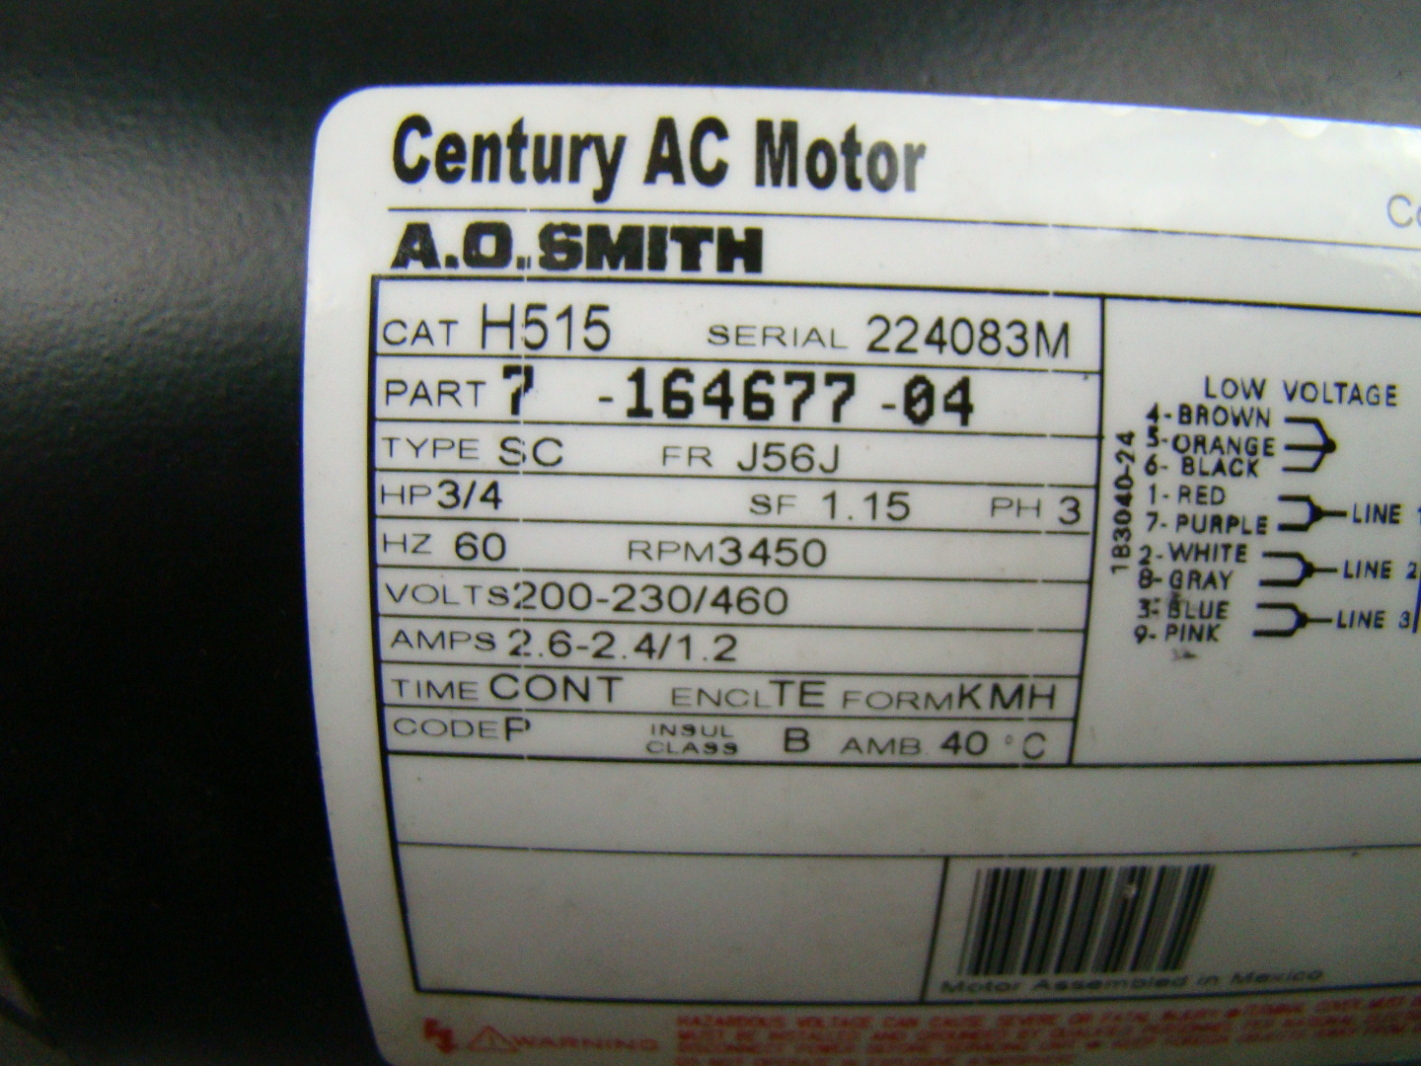 jf04344 ao smith 34 hp 3 phase 3450 rpm ac motor h515 2 a o smith corp 2 hp motoer wire diagram trype uak,o \u2022 indy500 co  at webbmarketing.co